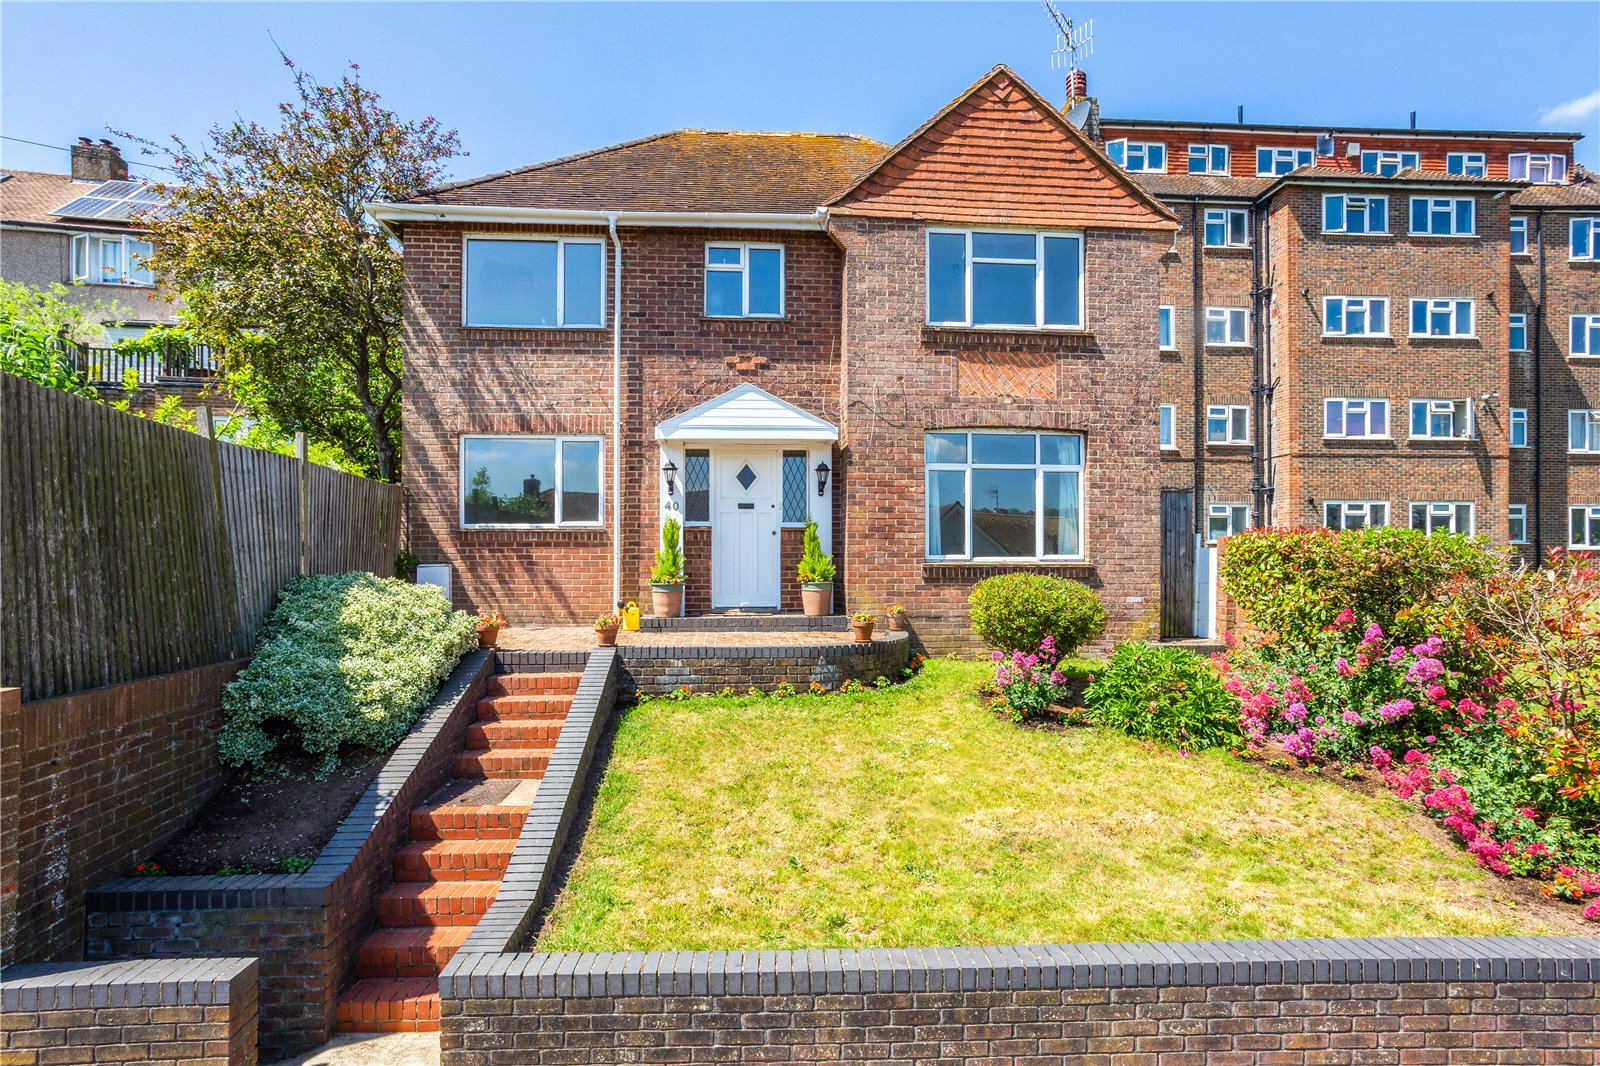 Goldstone Way, Hove, East Sussex, BN3